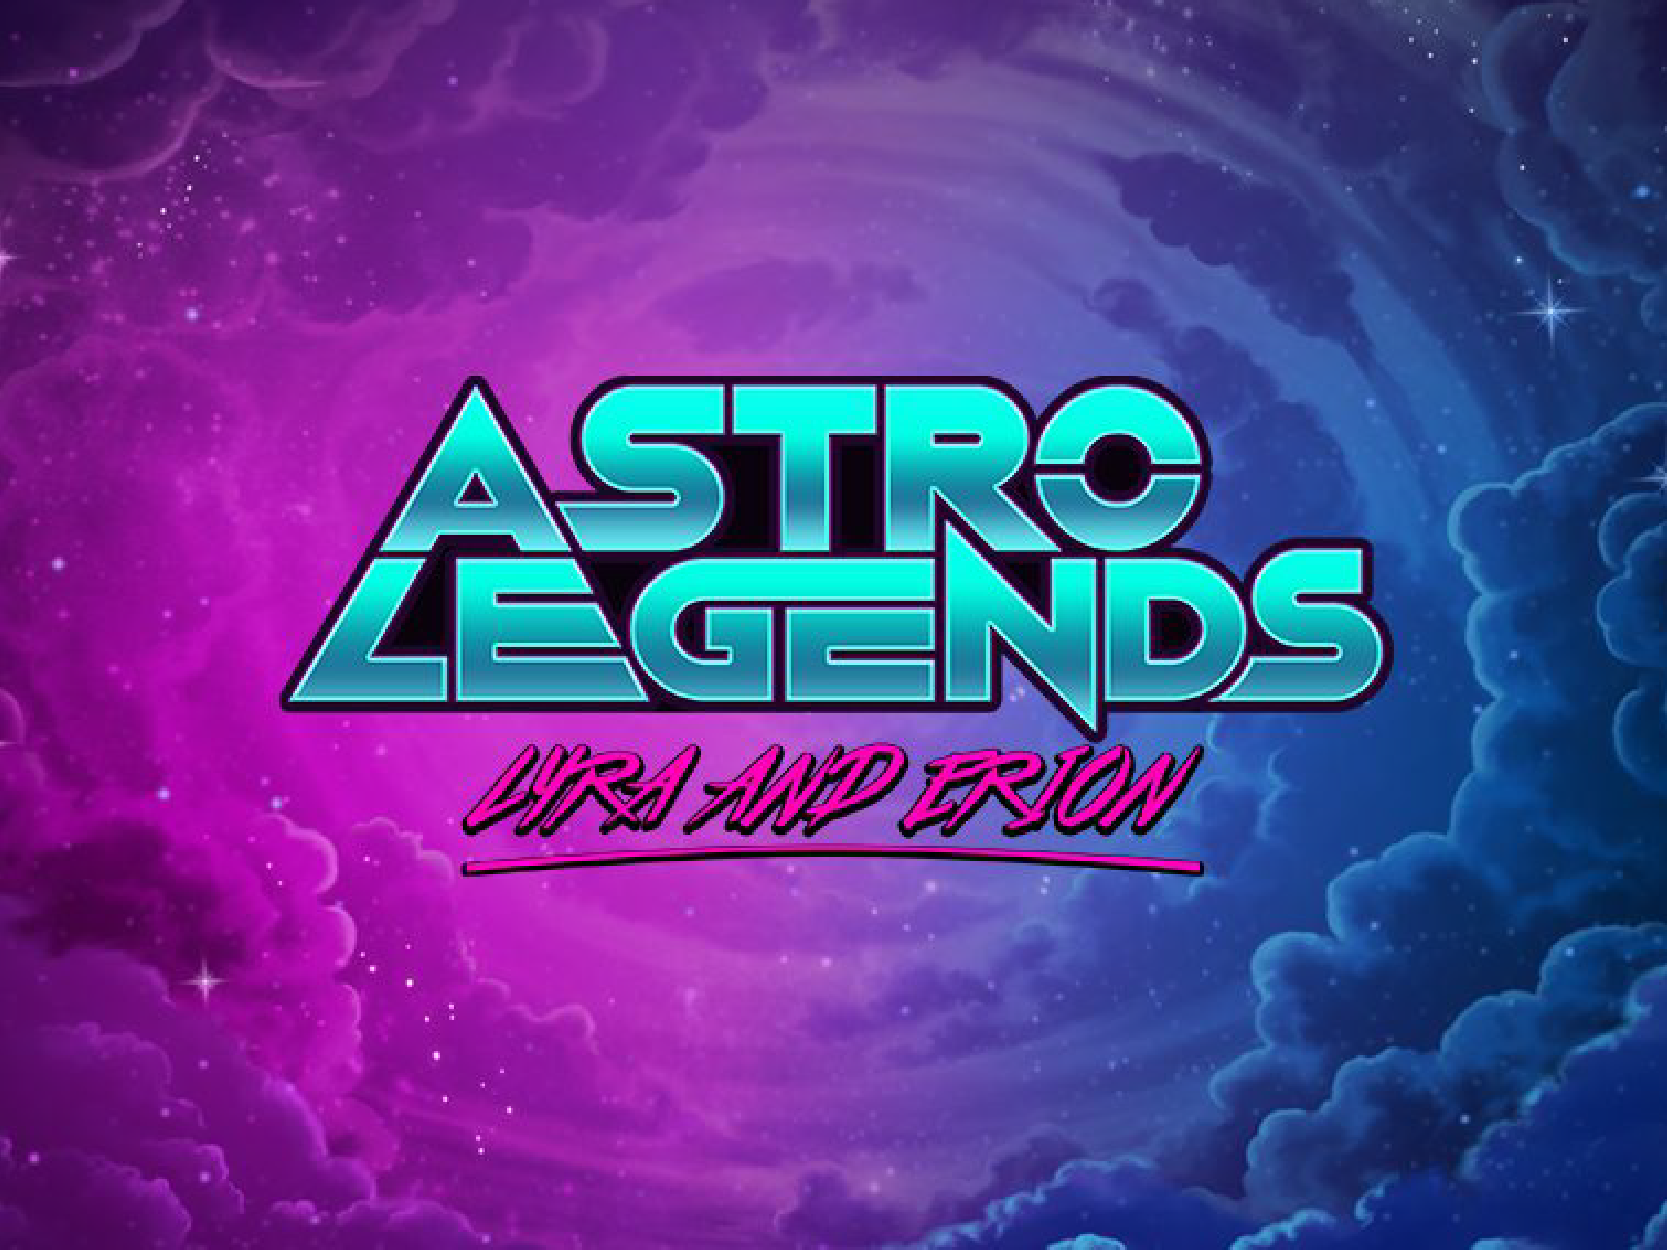 Astro Legends: Lyra And Erion  free play